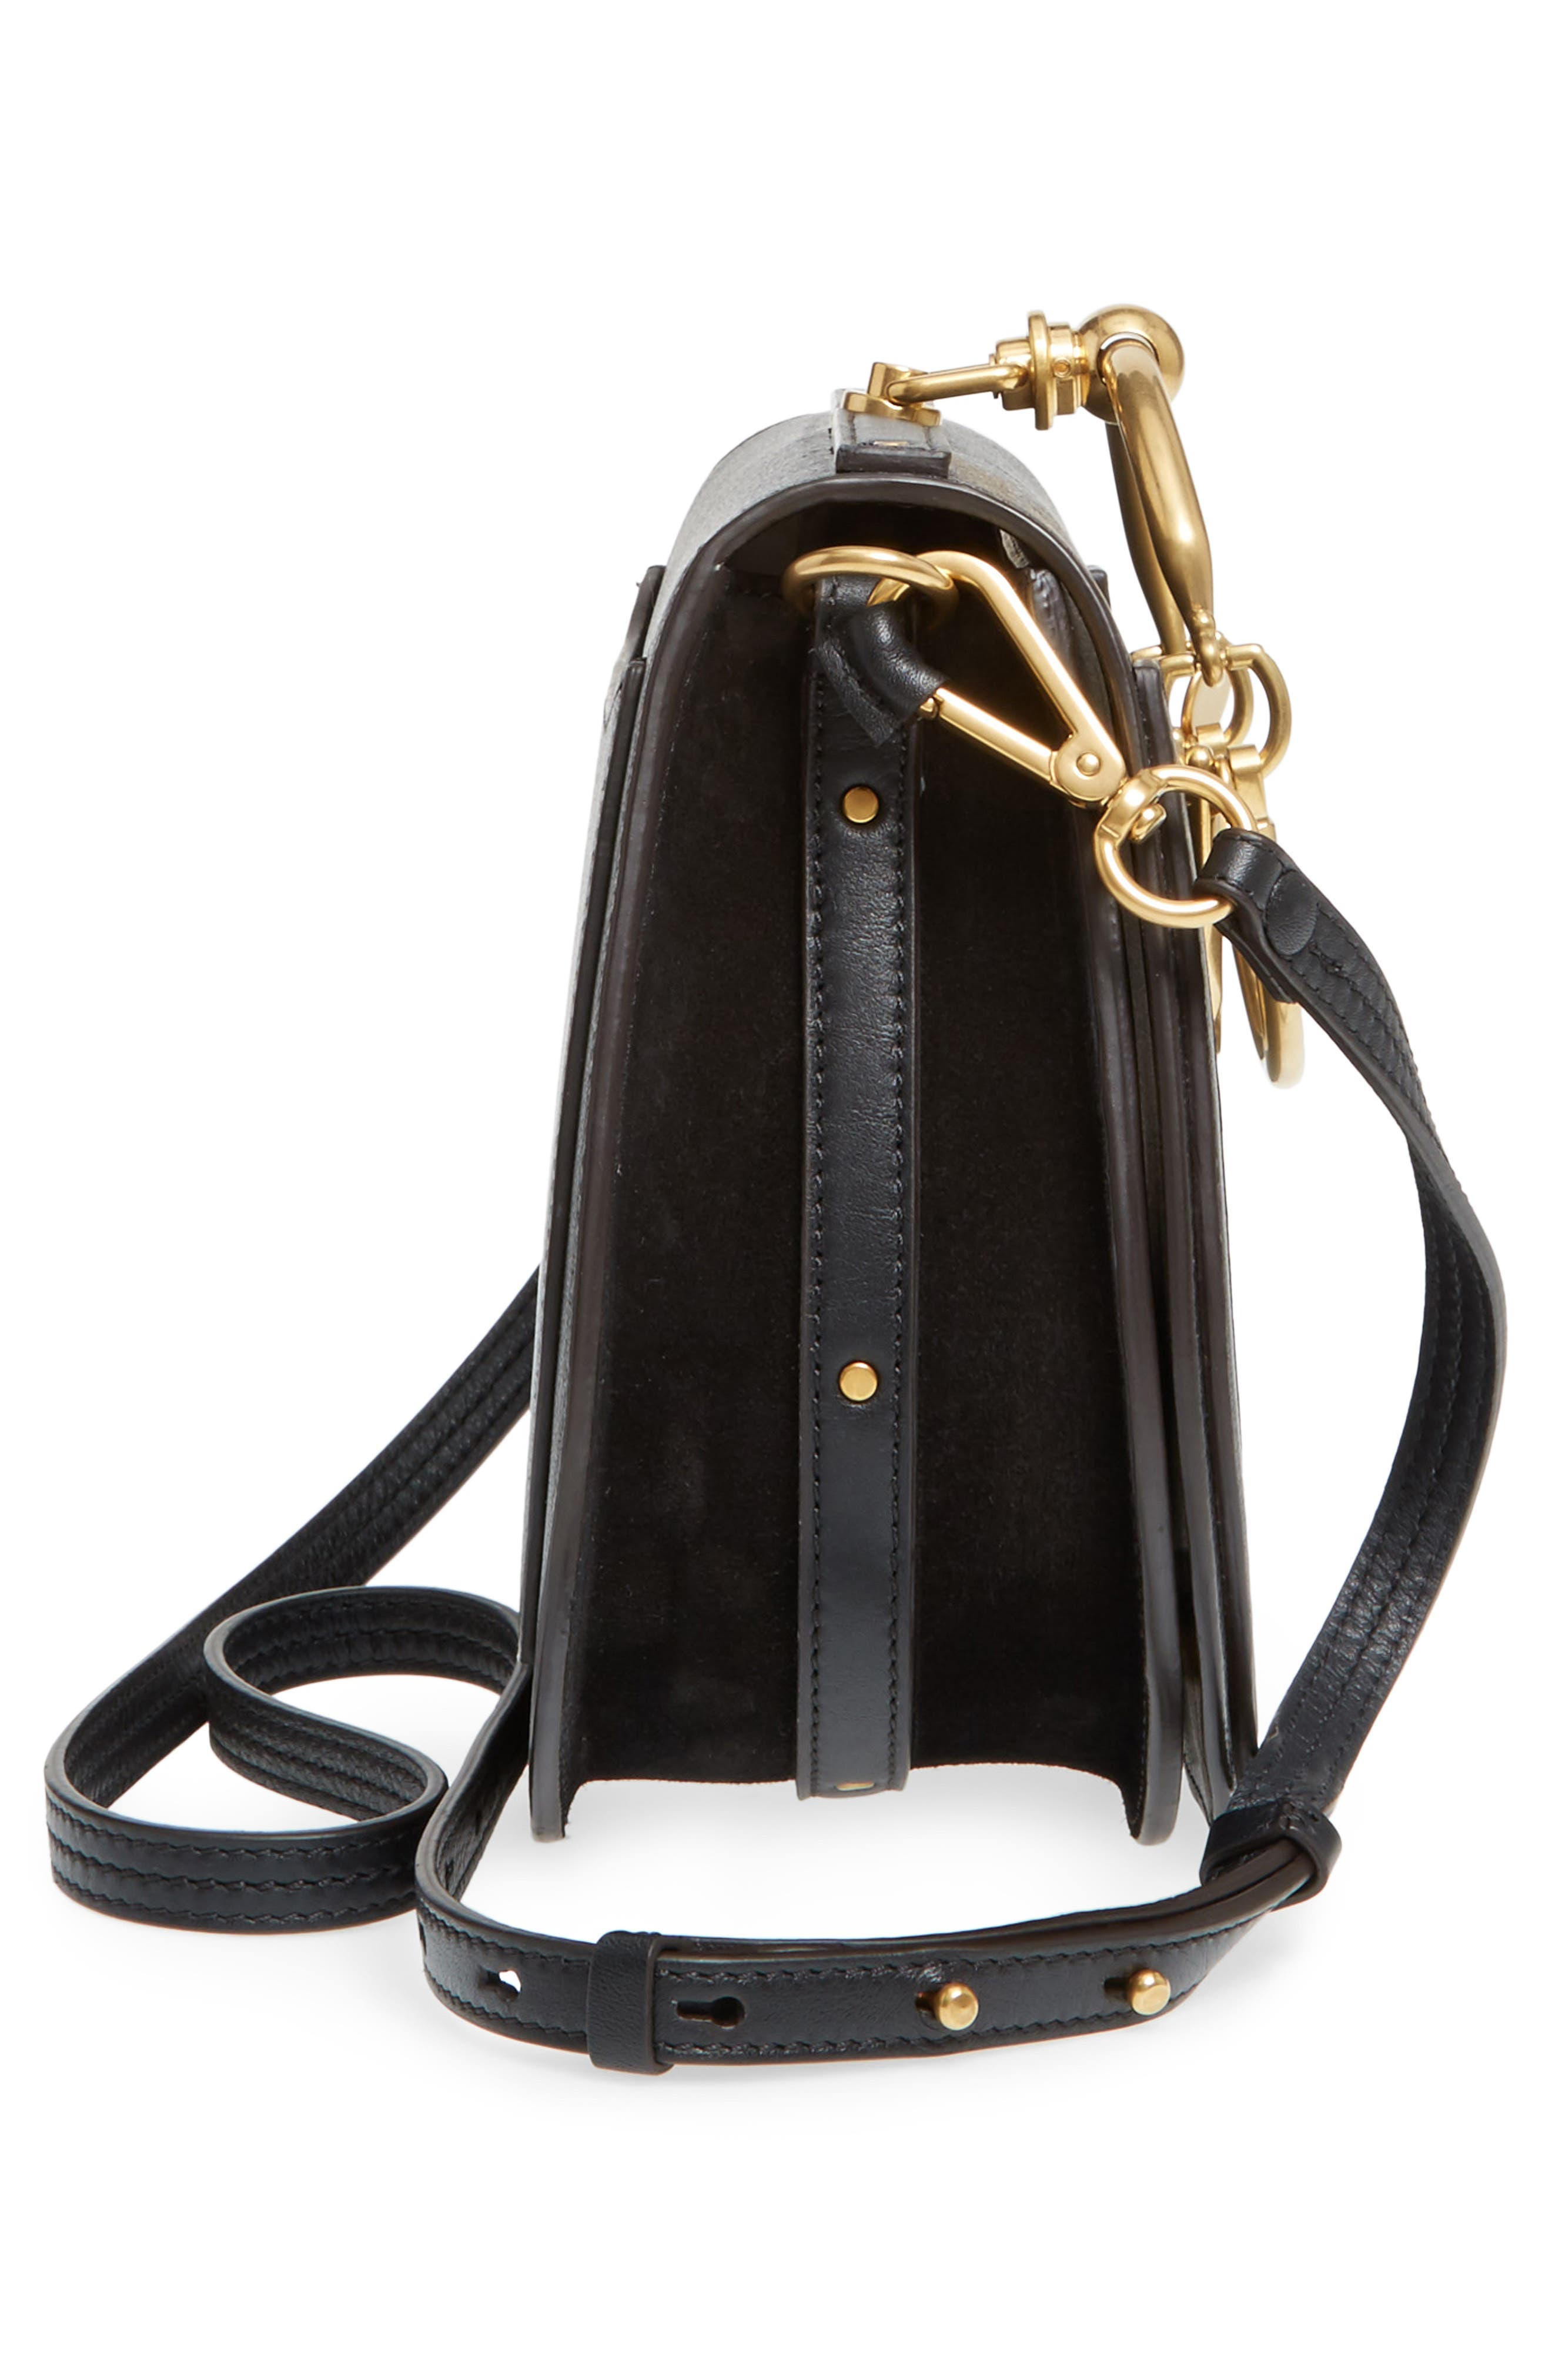 Medium Nile Leather Bracelet Saddle Bag,                             Alternate thumbnail 6, color,                             001NR001 BLACK